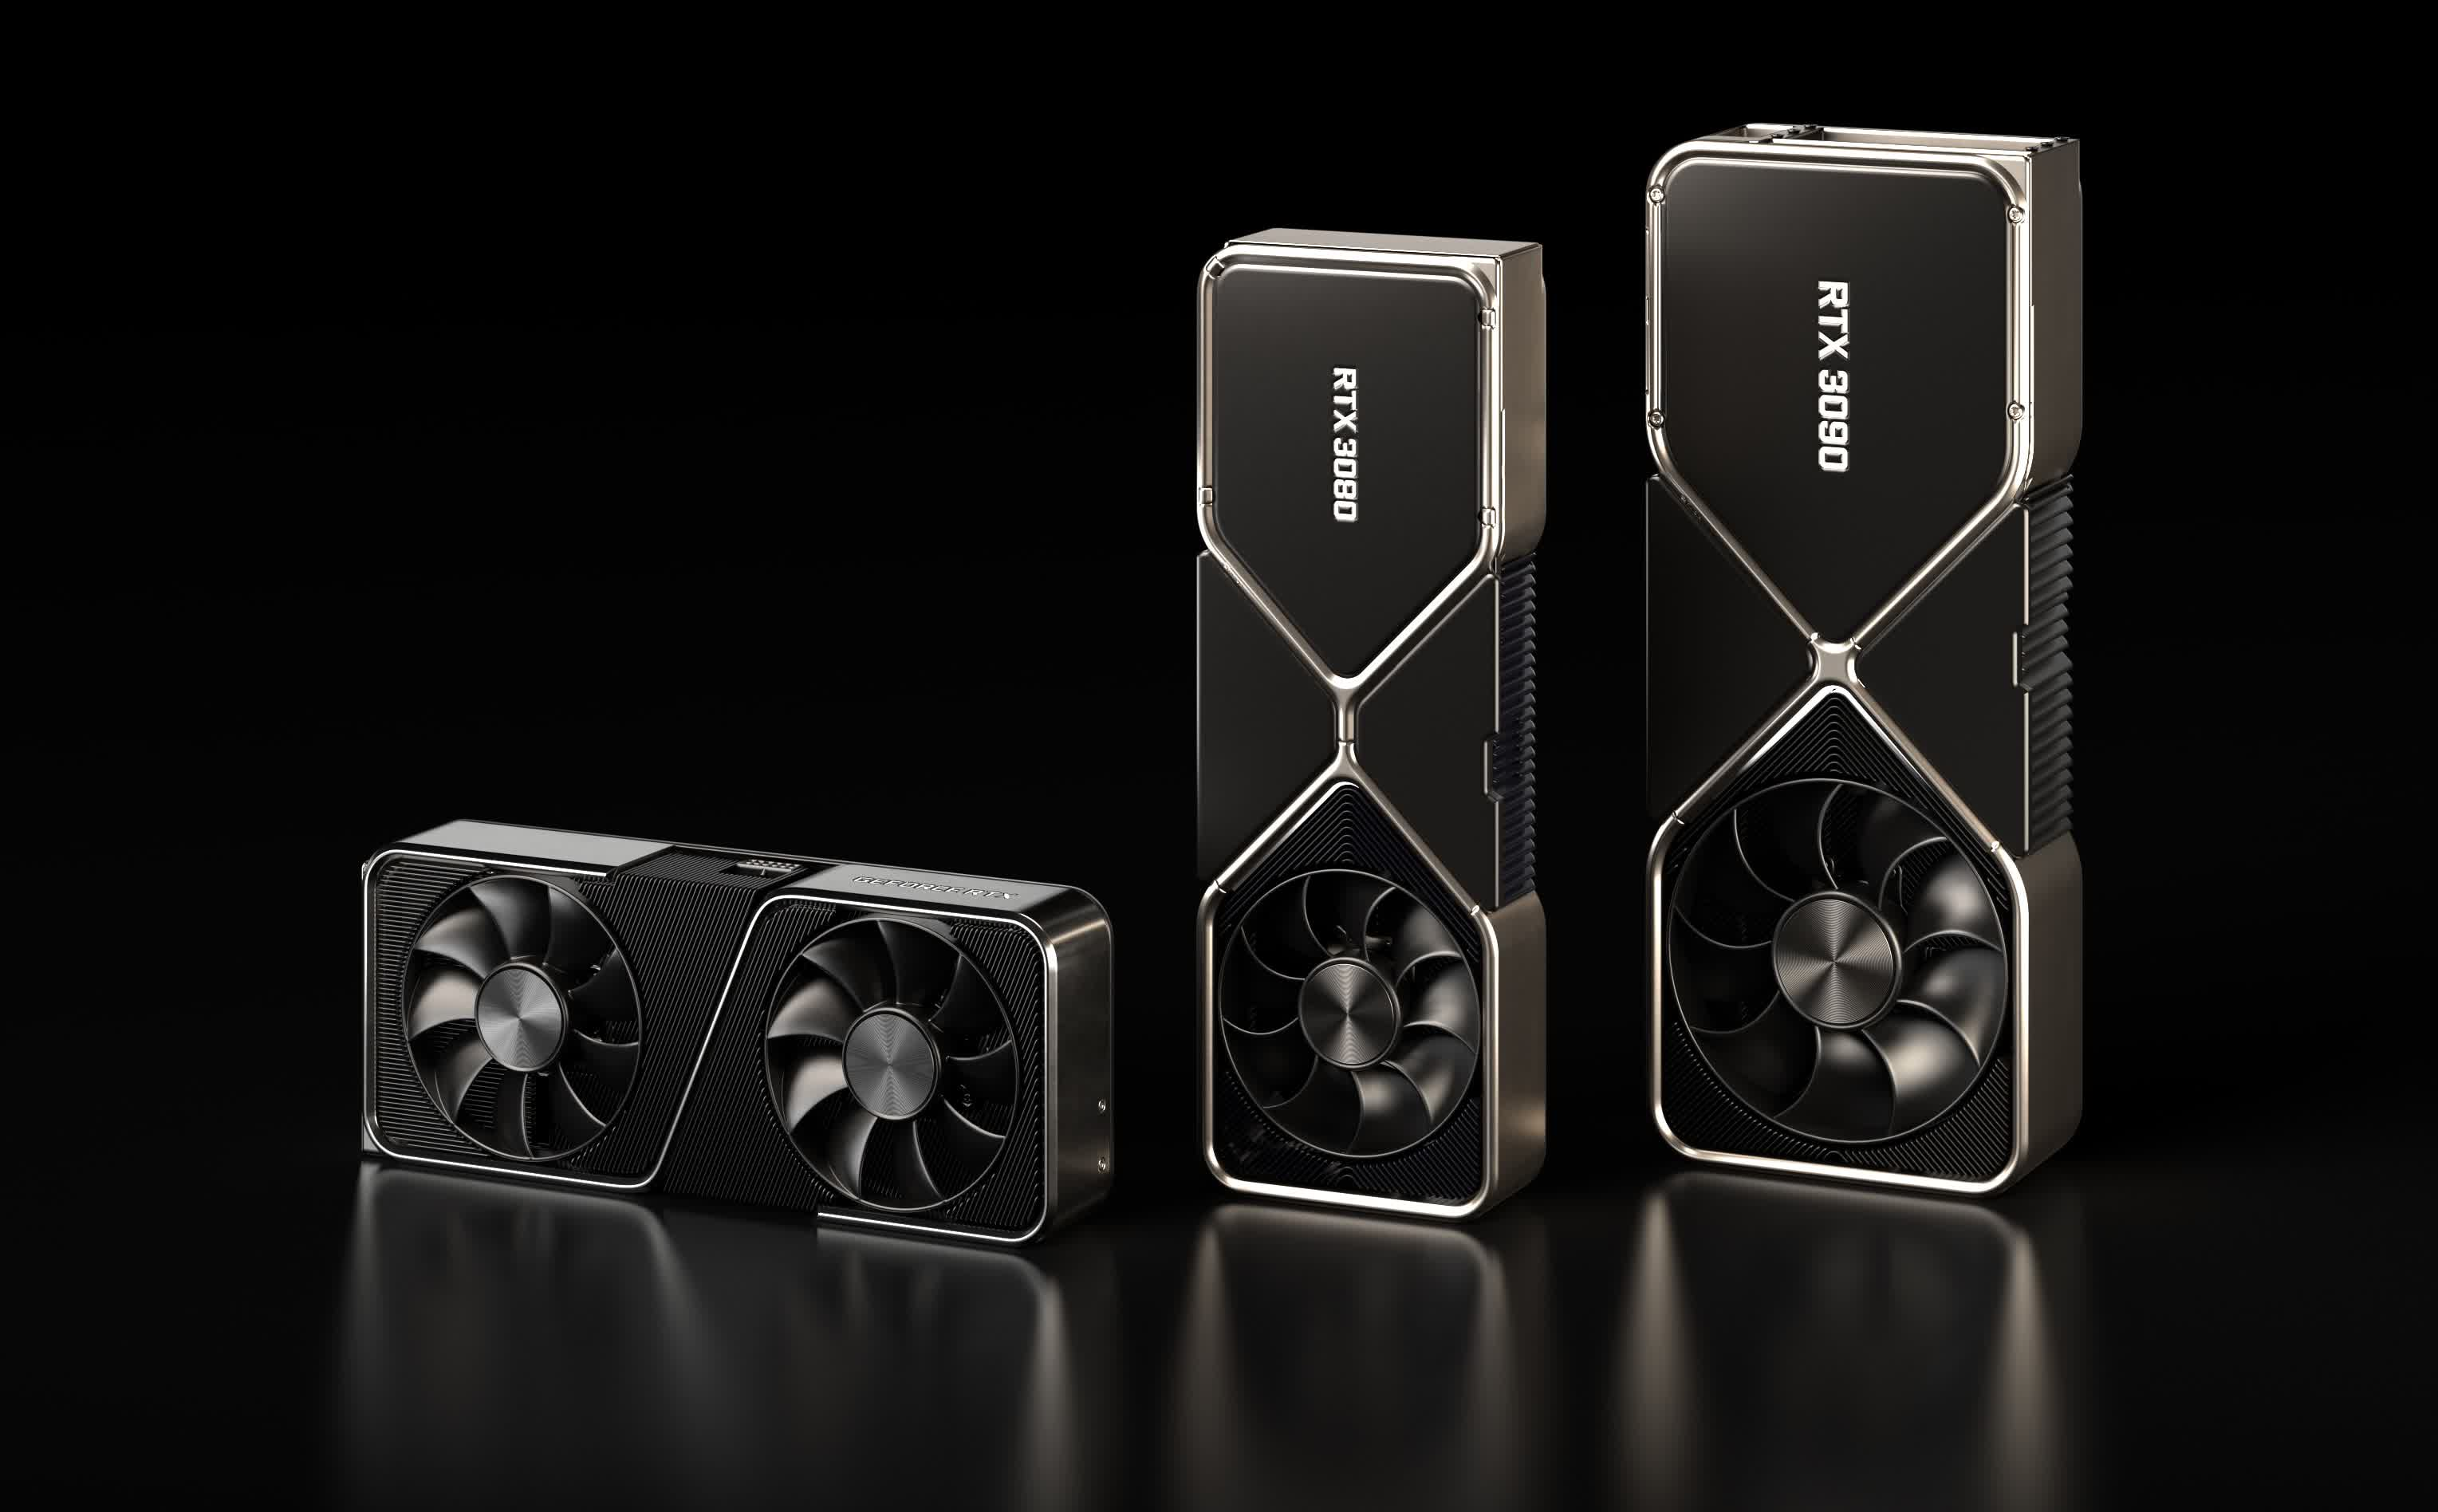 Nvidia pushes ray-traced gaming ahead with new GeForce RTX 3000 GPUs